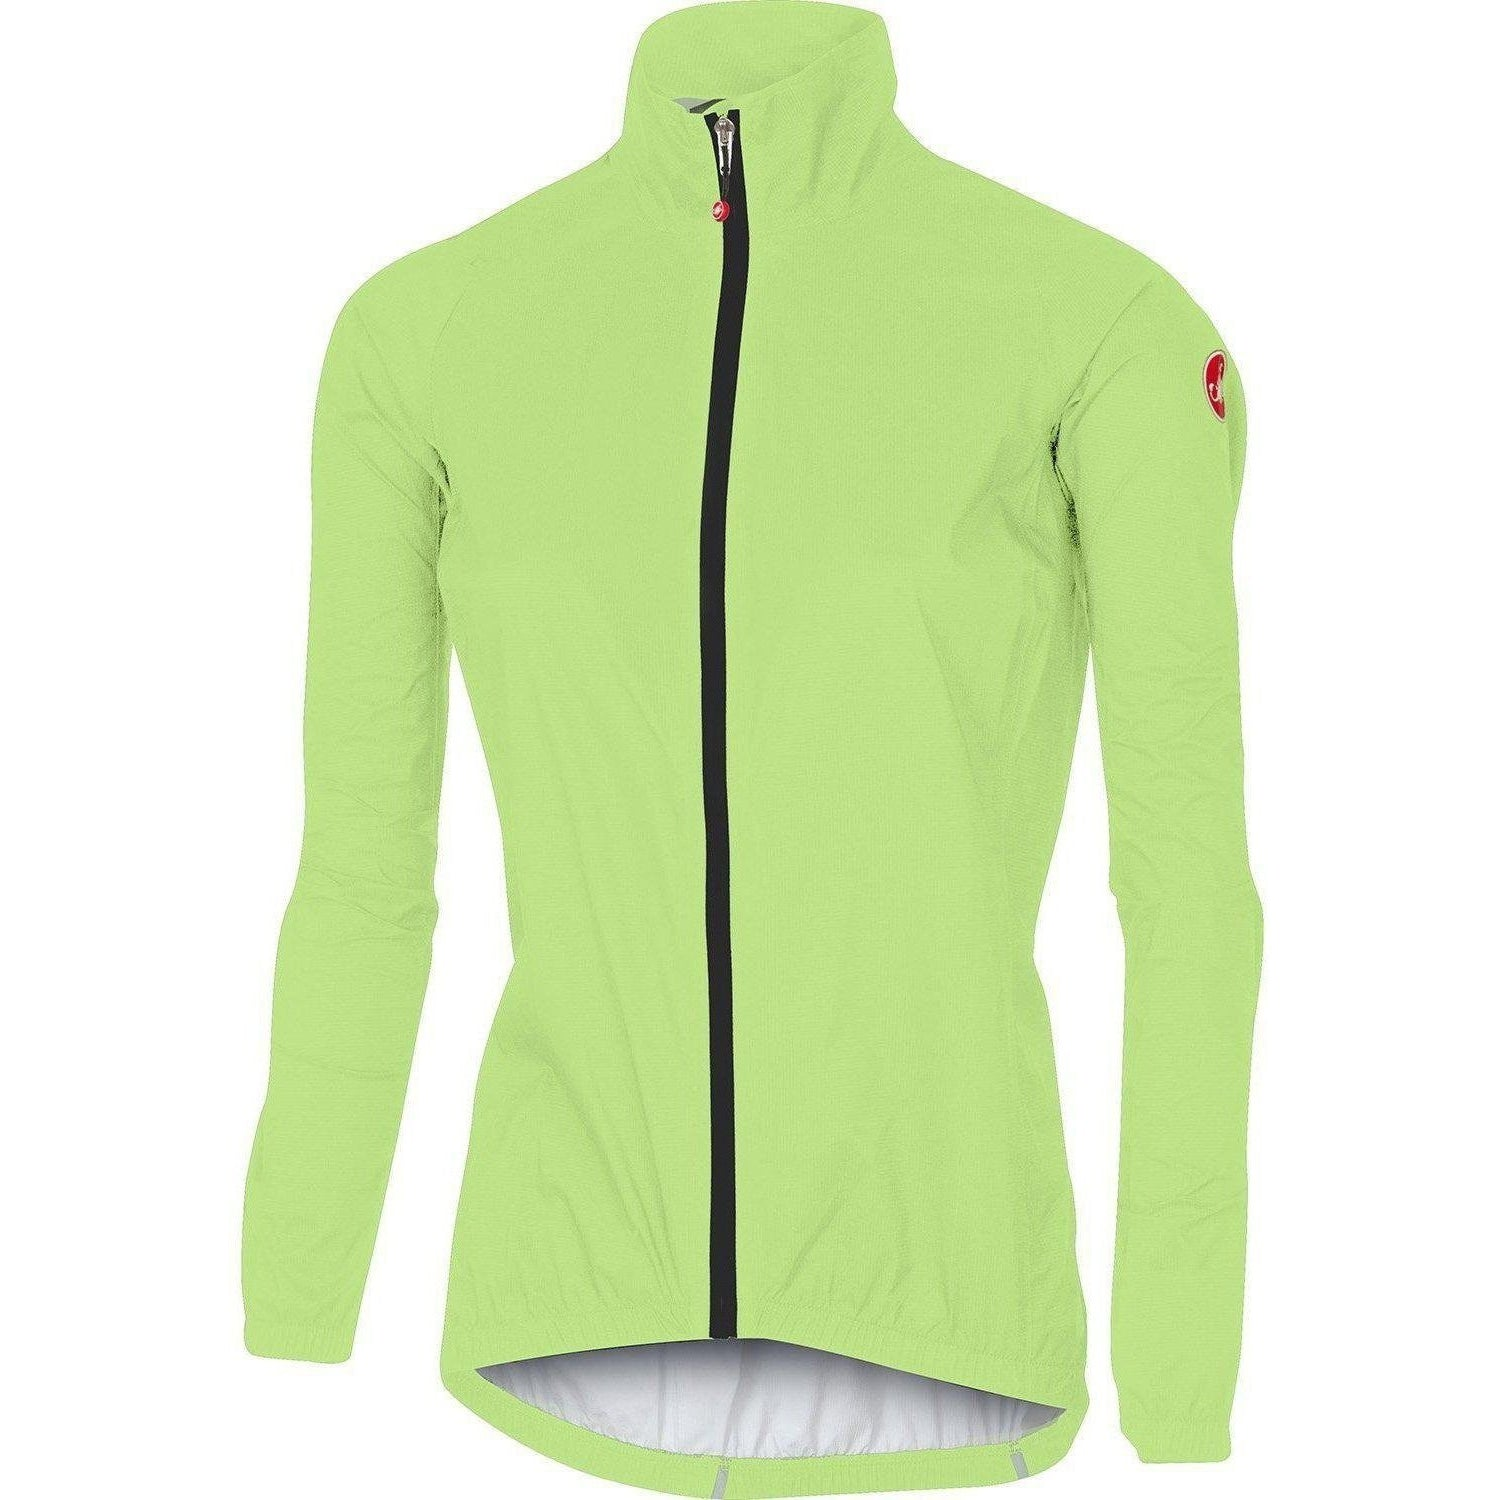 Jackets - Castelli Emergency Women's Rain Jacket